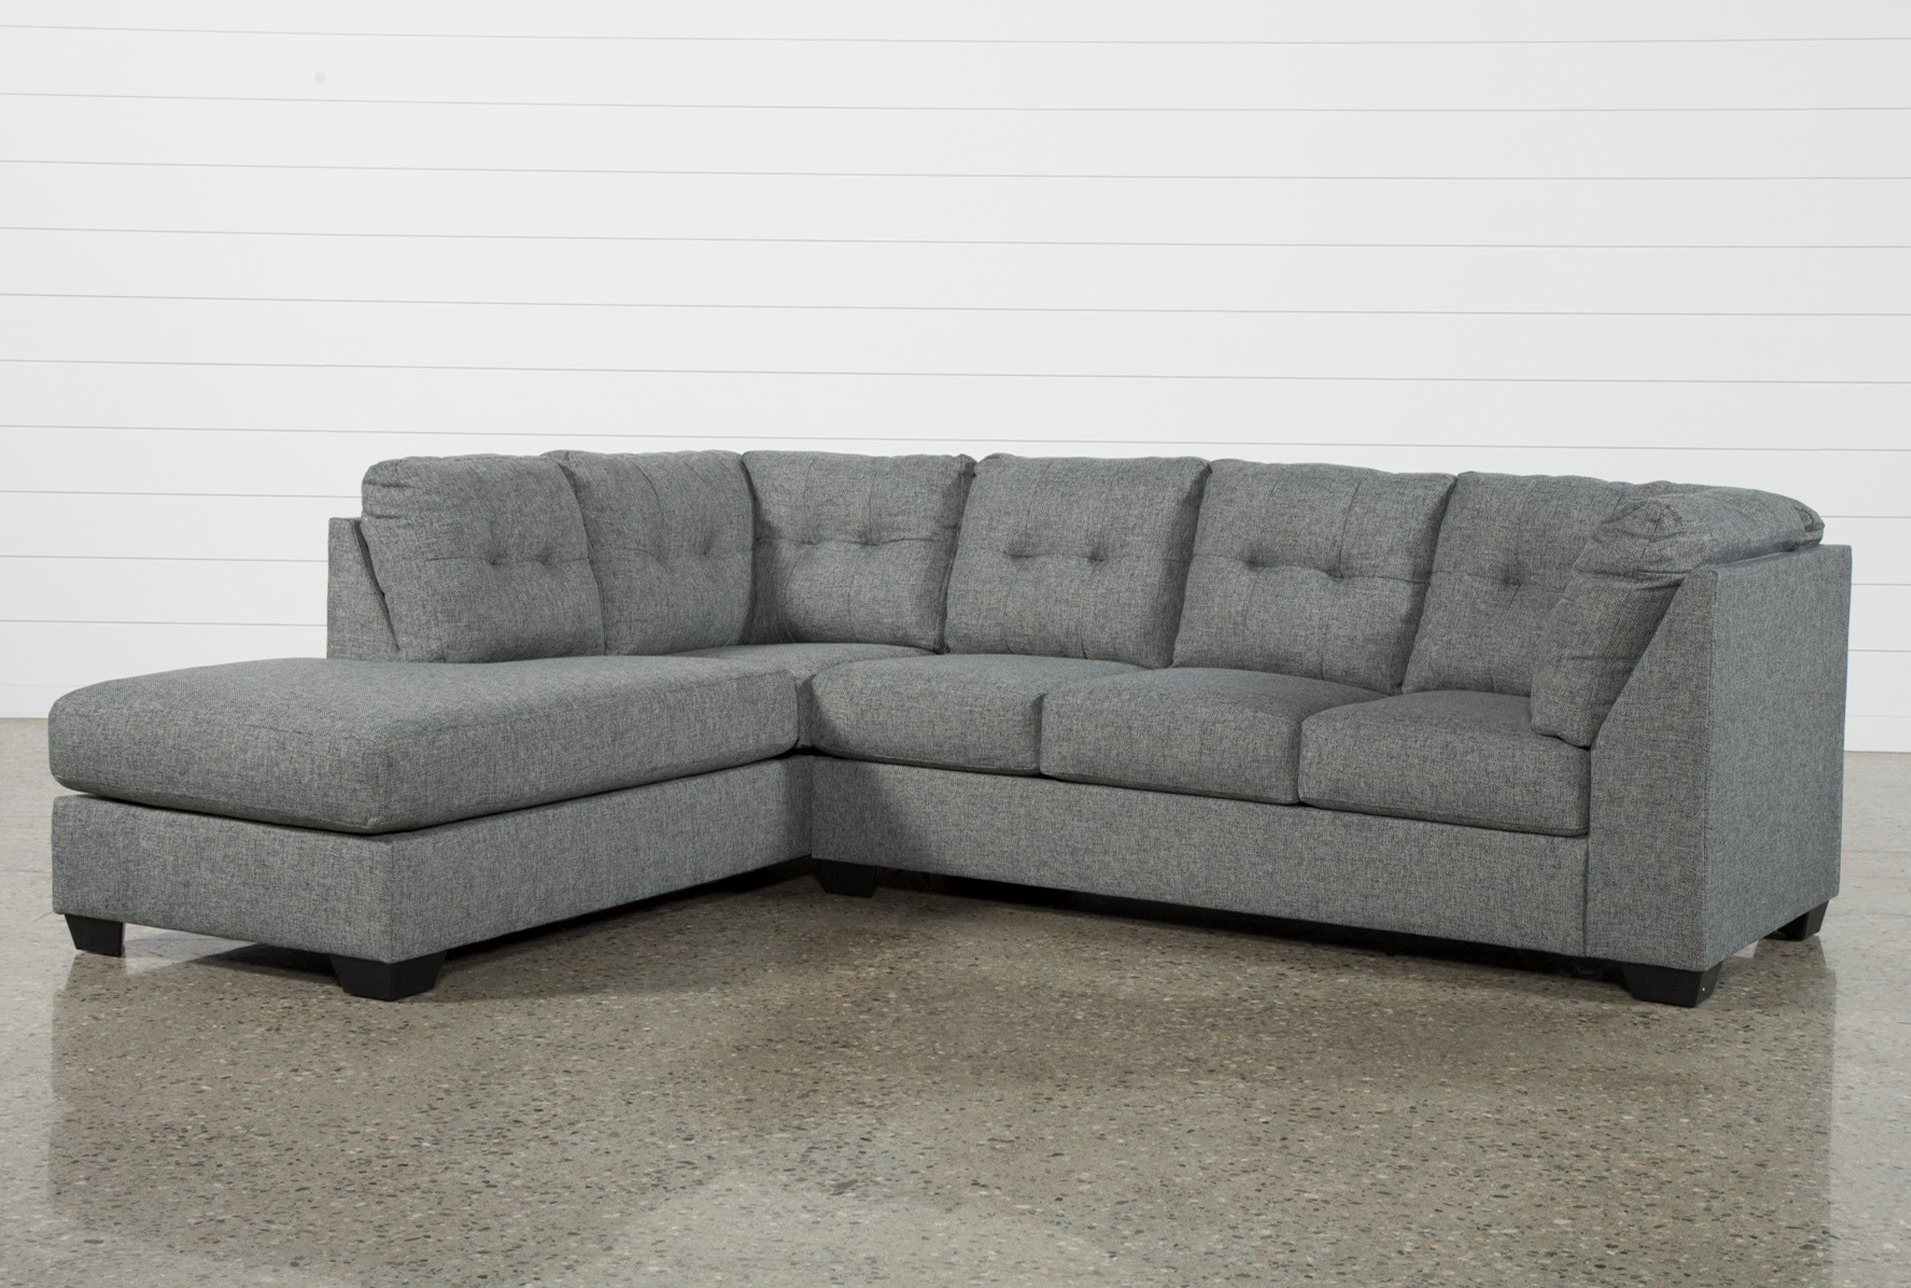 Lucy Grey 2 Piece Sleeper Sectionals With Raf Chaise With Regard To 2019 Sleeper Sectional With Chaise – Tidex (View 8 of 20)